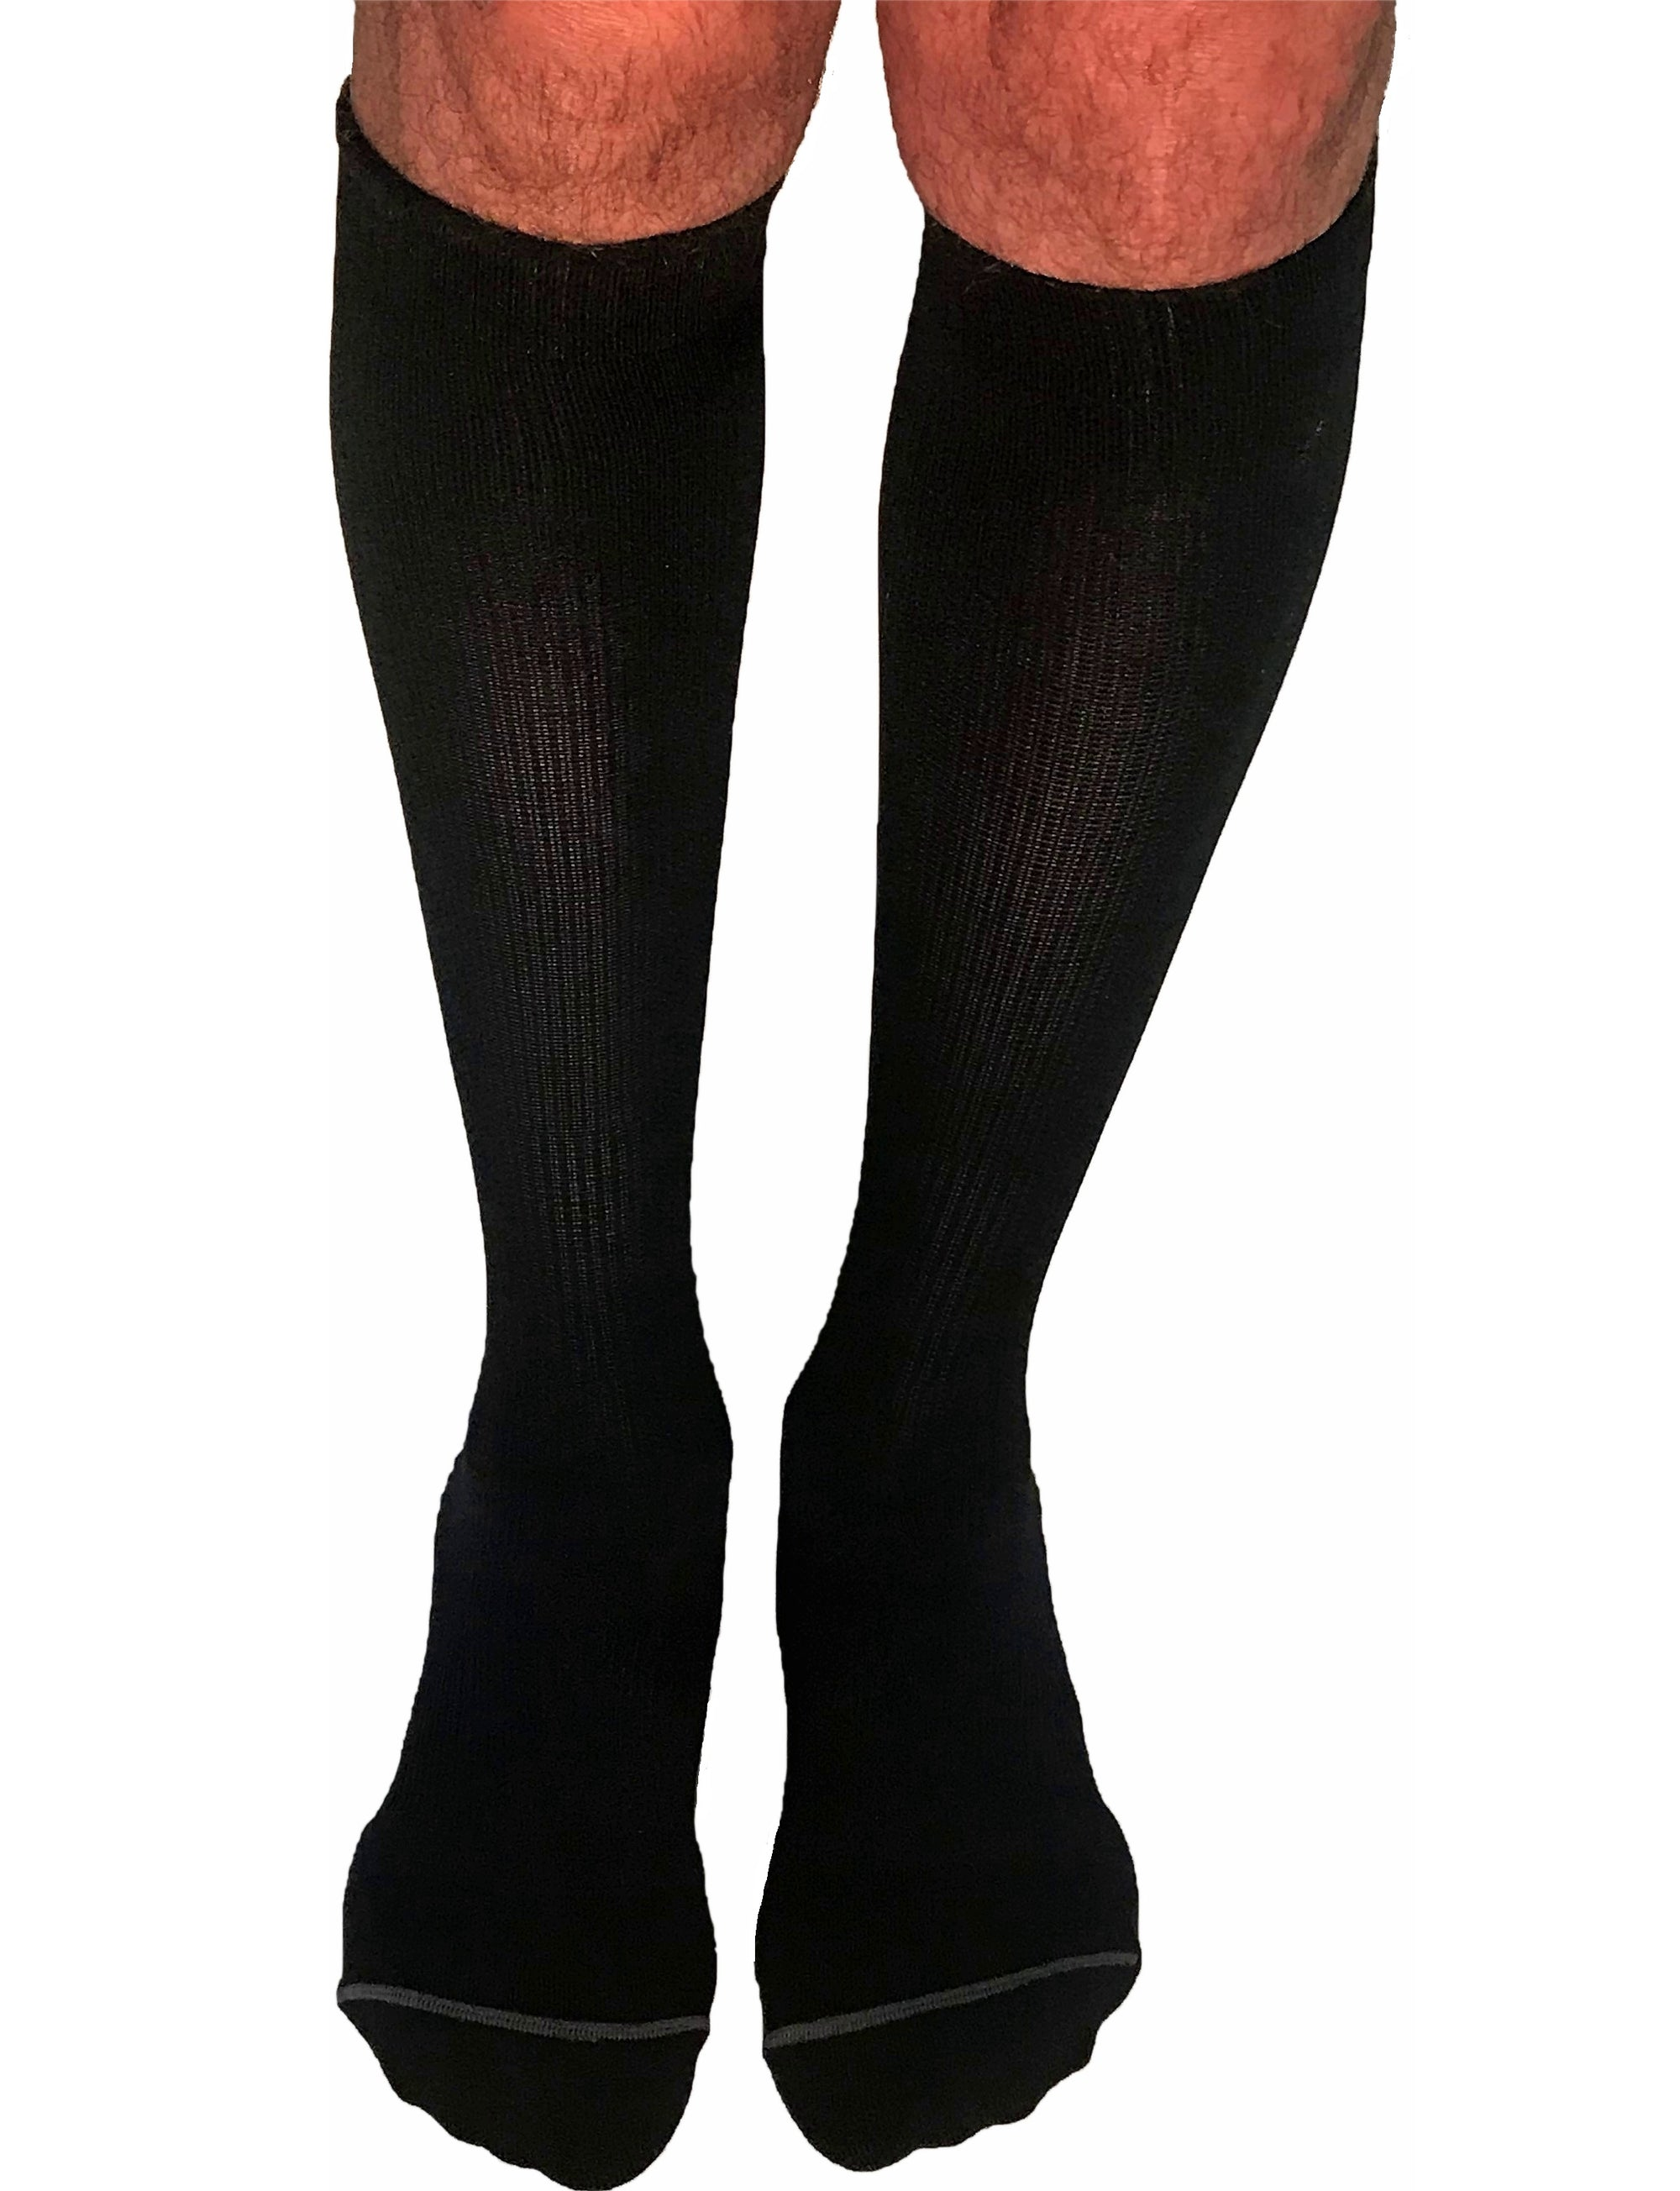 ad12fb4ae11 Ultimate Bamboo Compression Socks for larger calves - Shock Aid ...